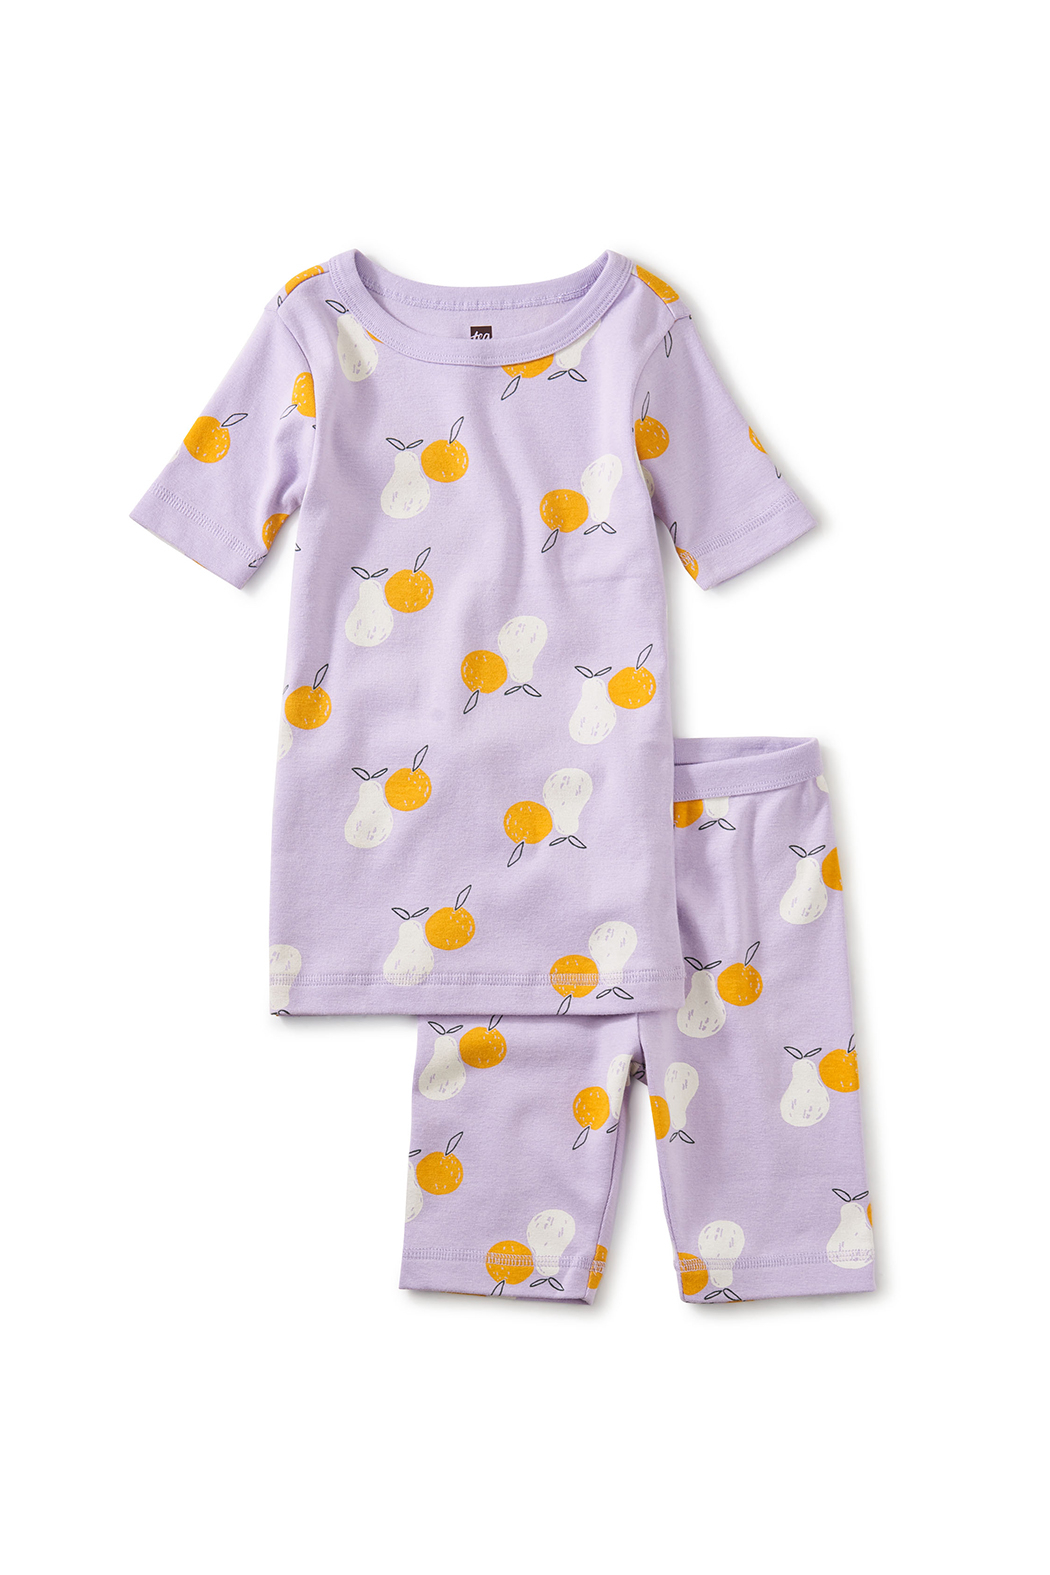 Tea Collection In Your Dreams Pajama Set - Modern Fruit - Main Image